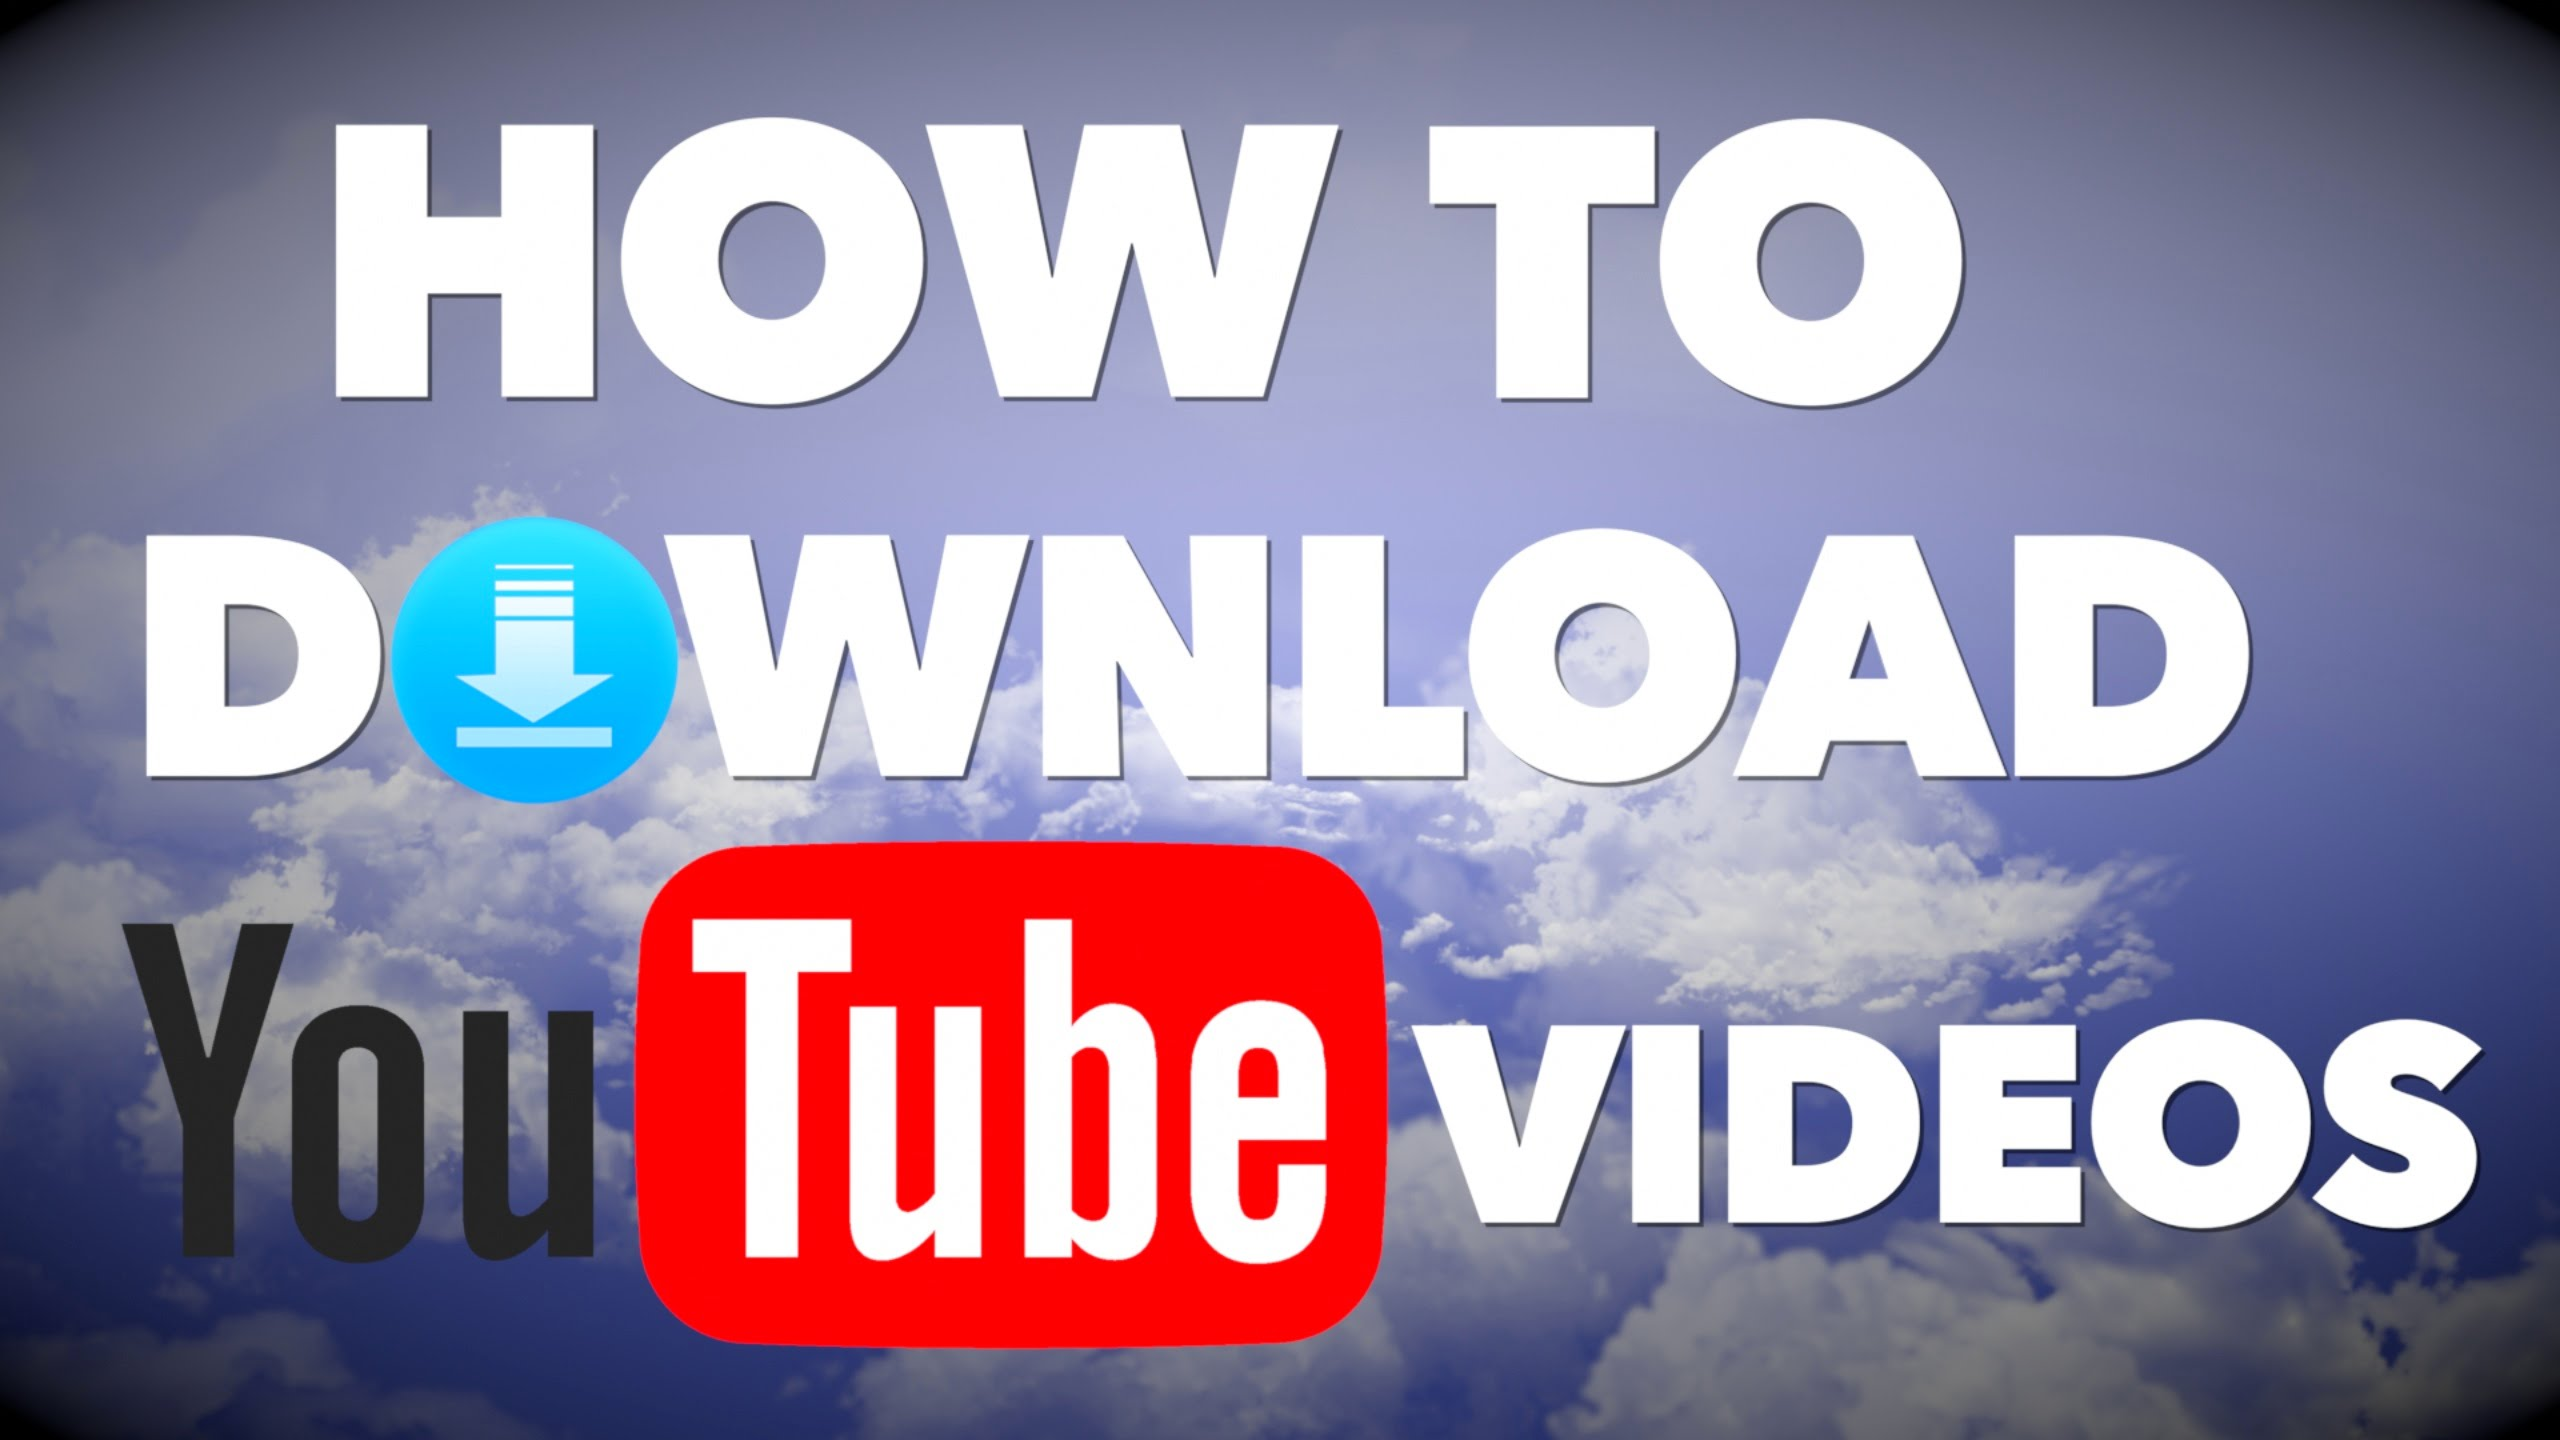 Free best youtube video downloader apk download for android | getjar.